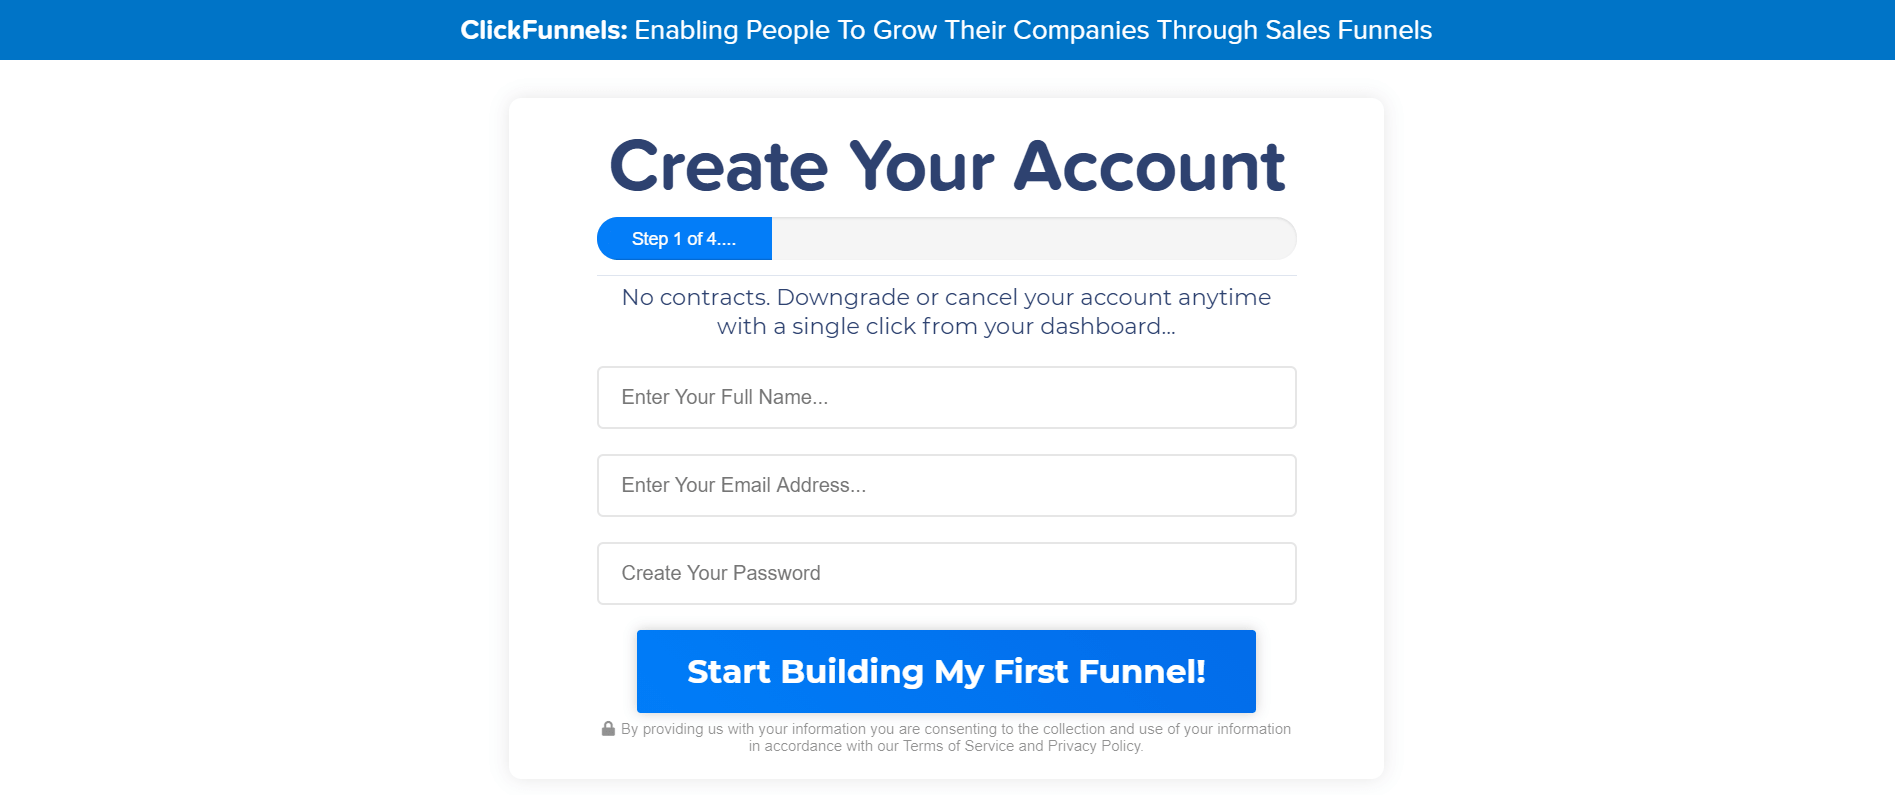 leads access for the clickfunnels website